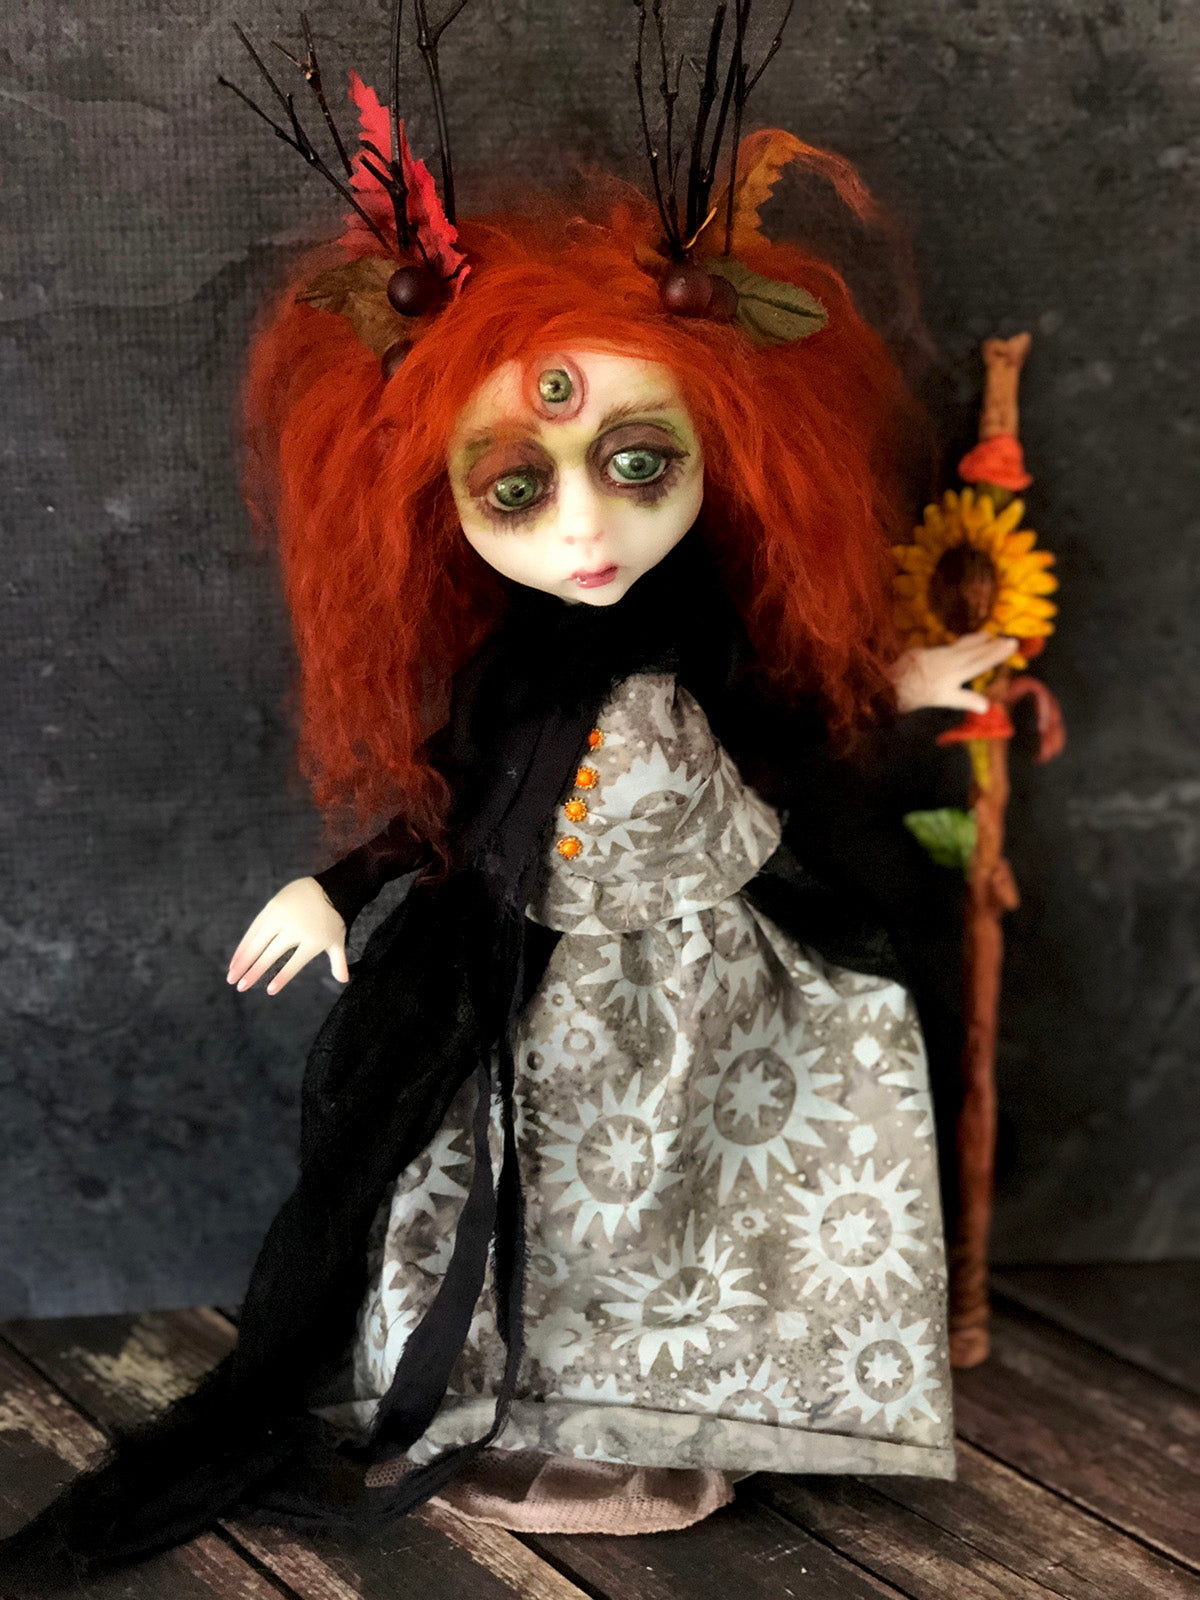 The Seer Third eye Witch OOAK Halloween Art Doll LuLu Lancaster